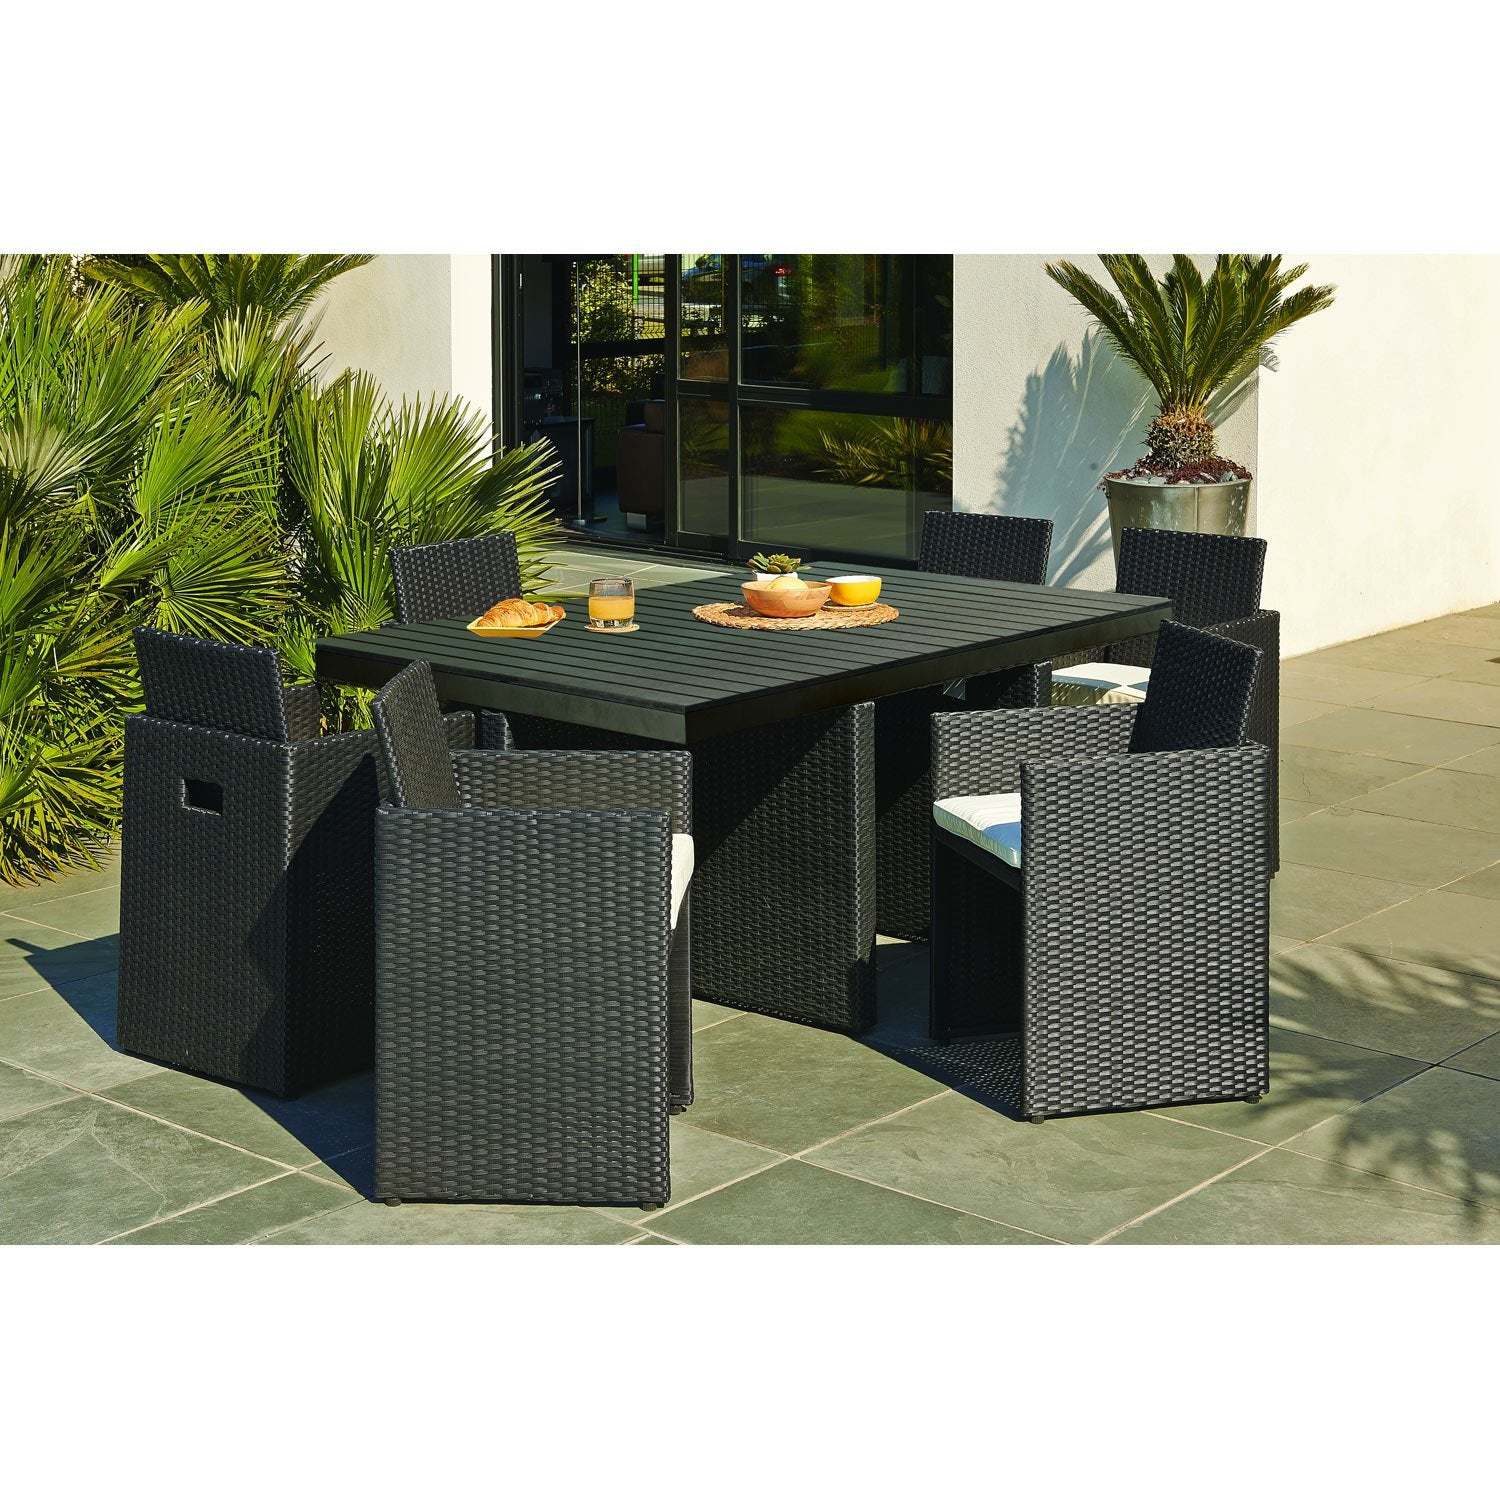 Salon de jardin encastrable r sine tress e noir 1 table - Salon de jardin haut ...